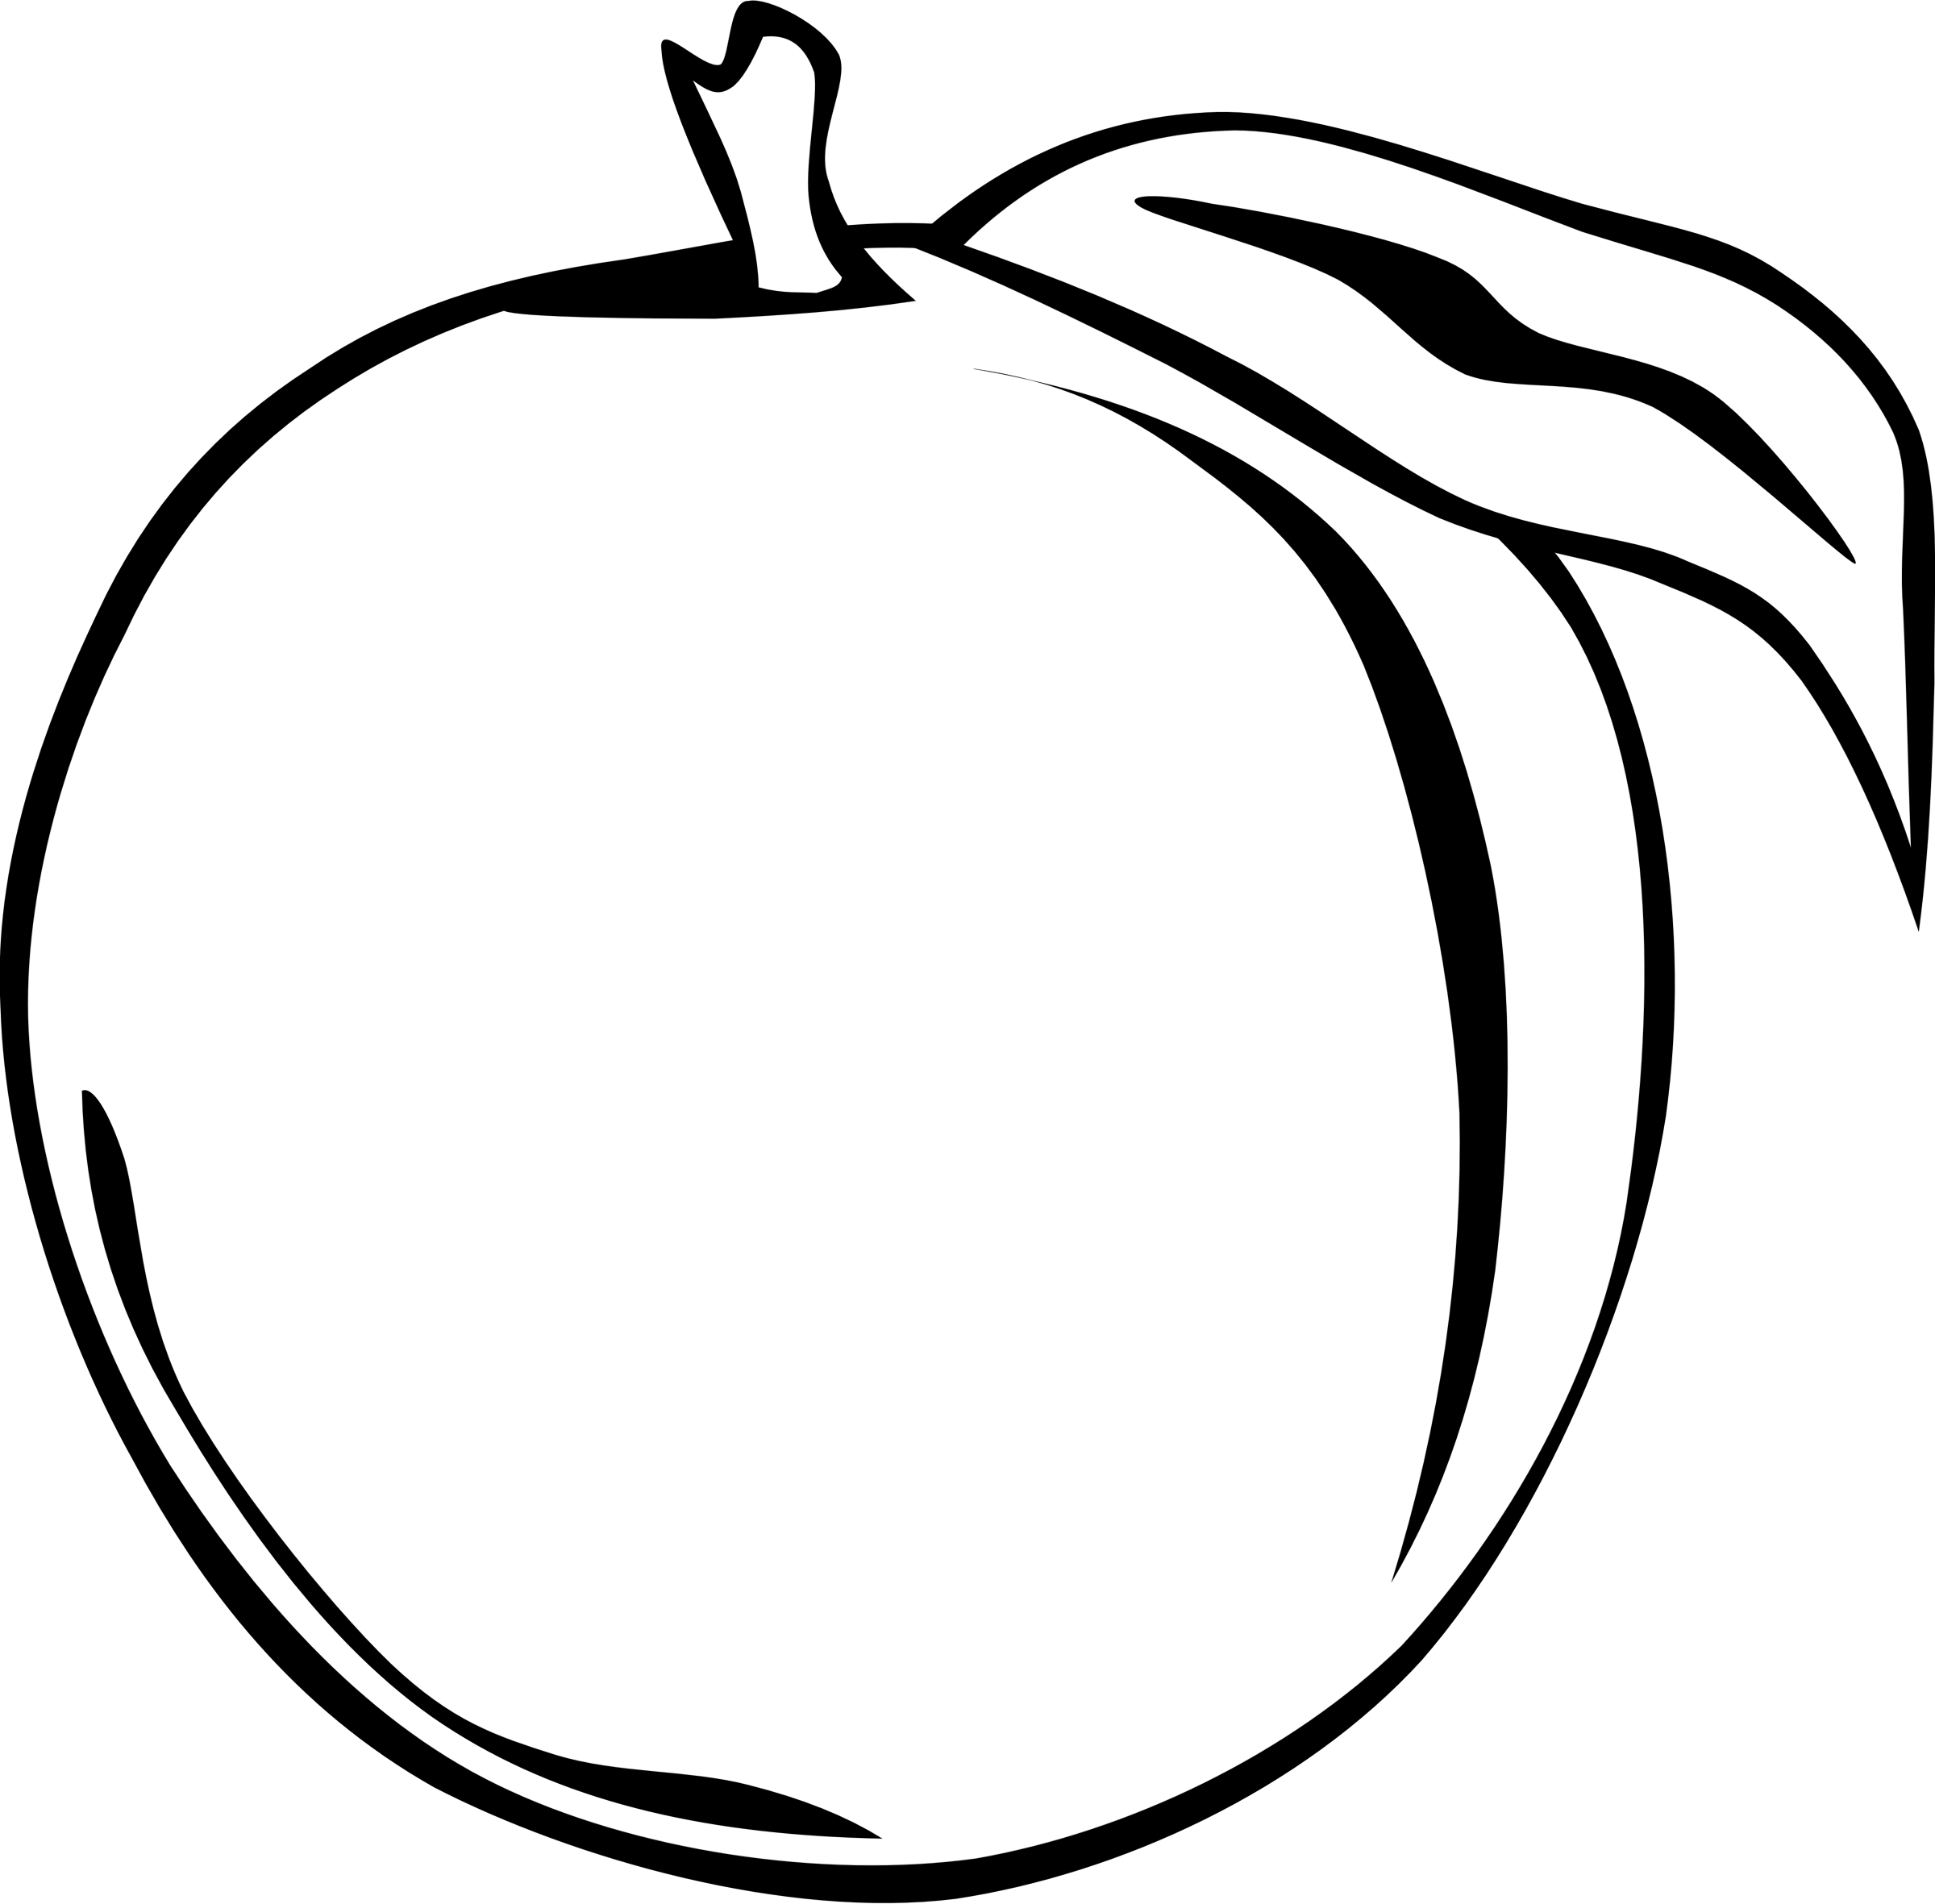 Clipart apple on book 2007 images picture black and white Clipart - Simple Fruit (FF Menu) picture black and white